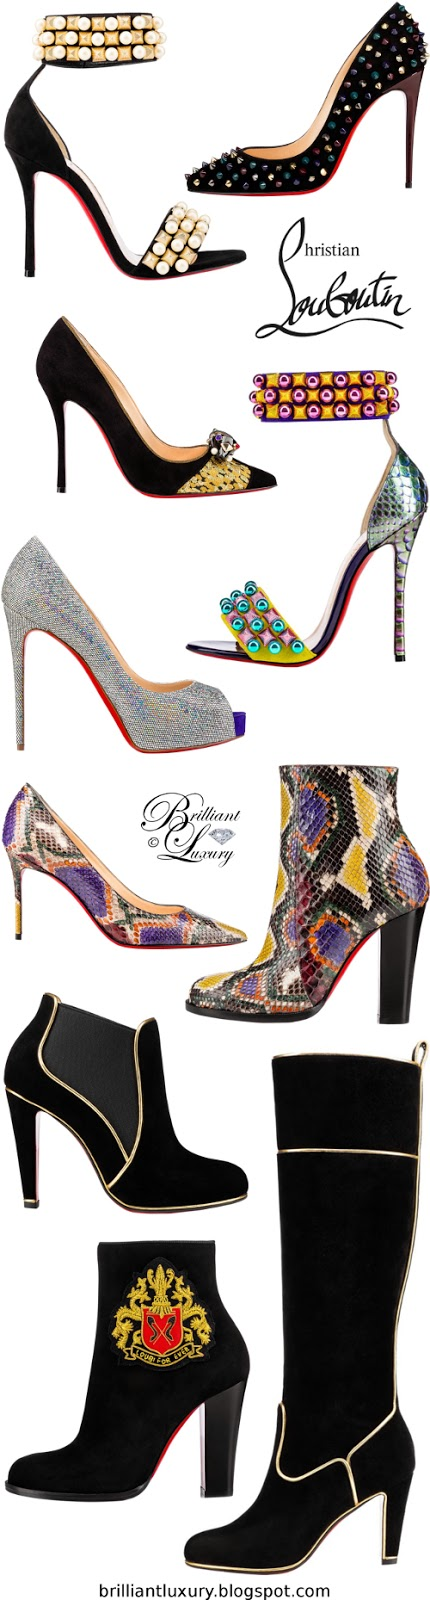 Brilliant Luxury ♦ Christian Louboutin New Collection FW 2016